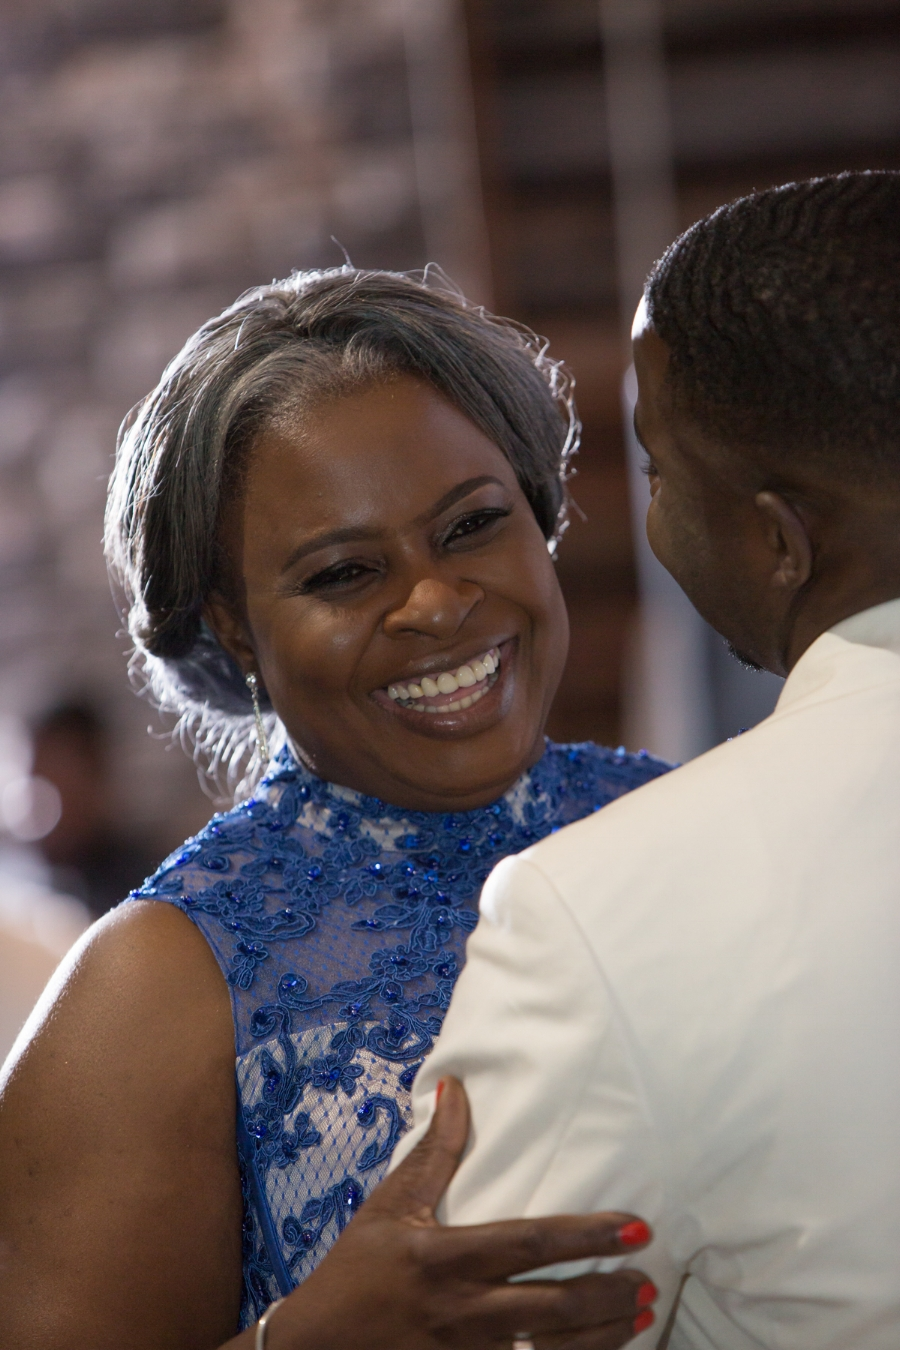 mother-smiling-dancing-with-son-wedding.jpg